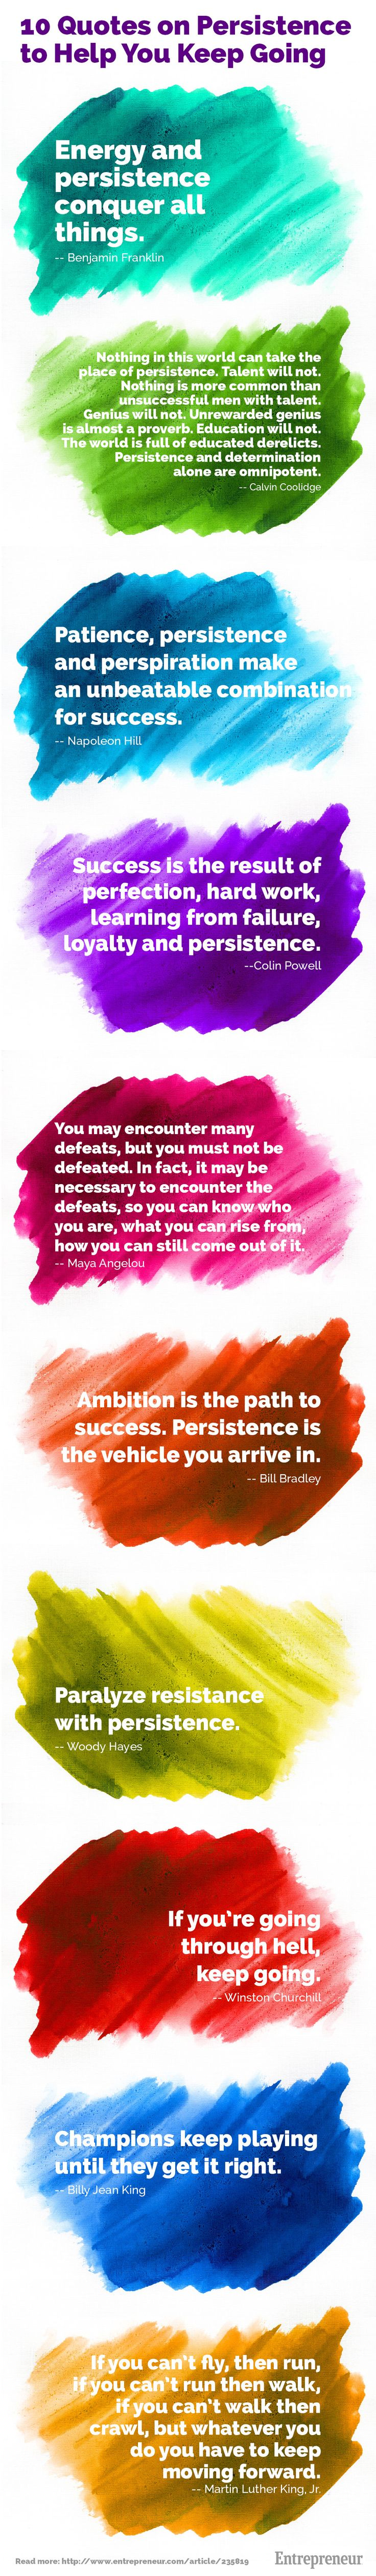 10 Quotes on Persistence to Help You Keep Going http://www.janetcampbell.ca/